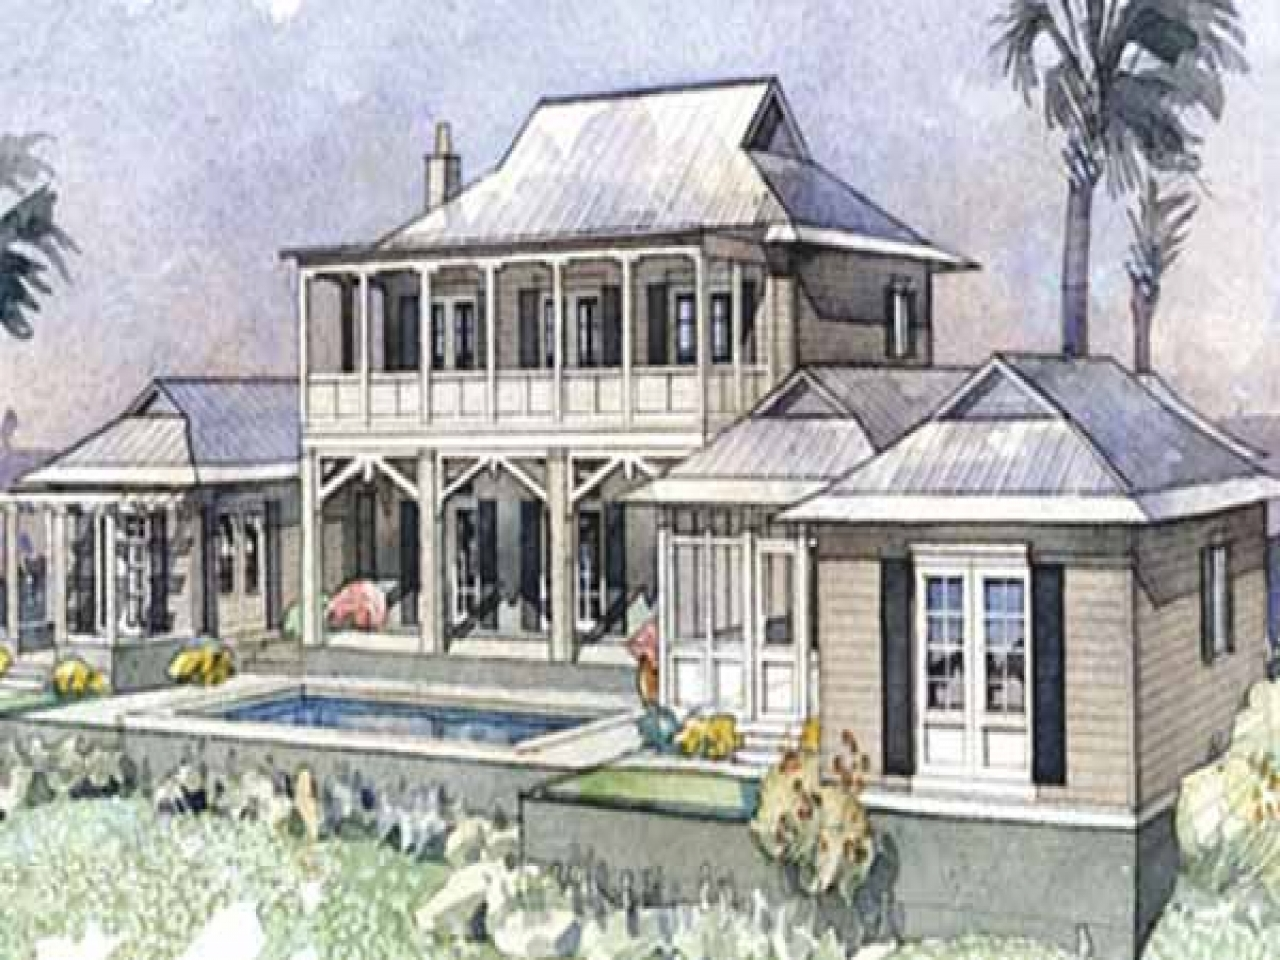 Southern living coastal house plans coastal low country house plans southern coastal home plans - Coastal home design ...